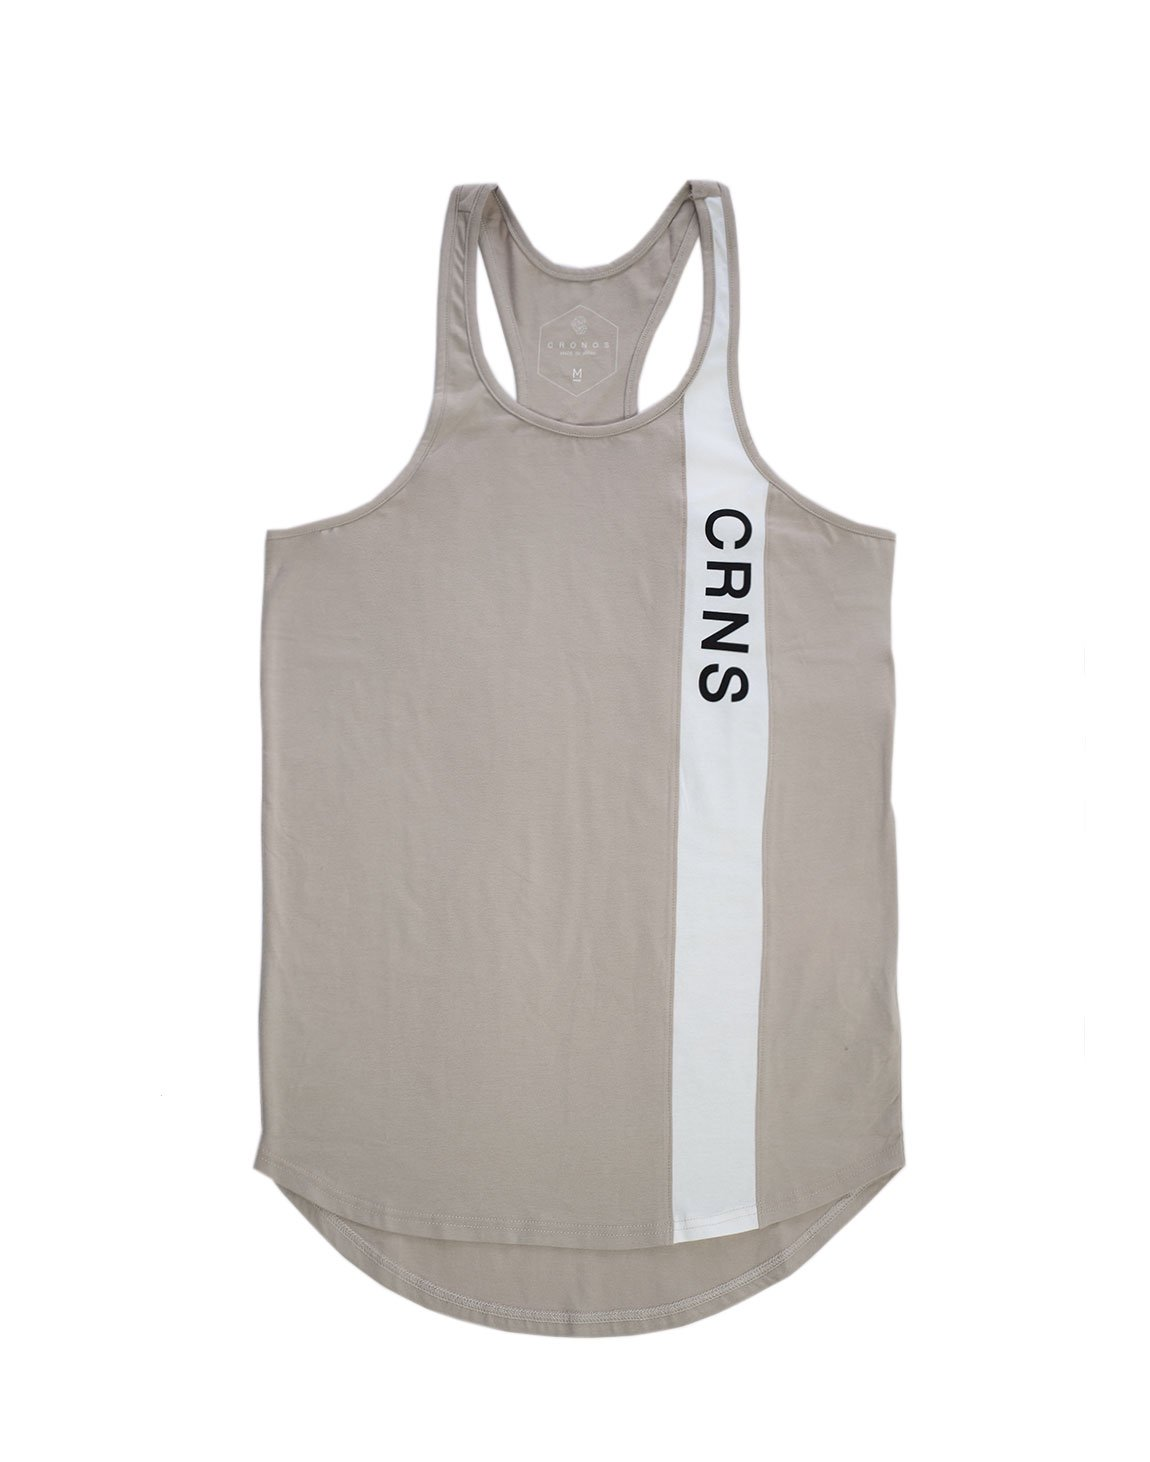 <img class='new_mark_img1' src='https://img.shop-pro.jp/img/new/icons1.gif' style='border:none;display:inline;margin:0px;padding:0px;width:auto;' />CRNS Line Tank top BEIGE